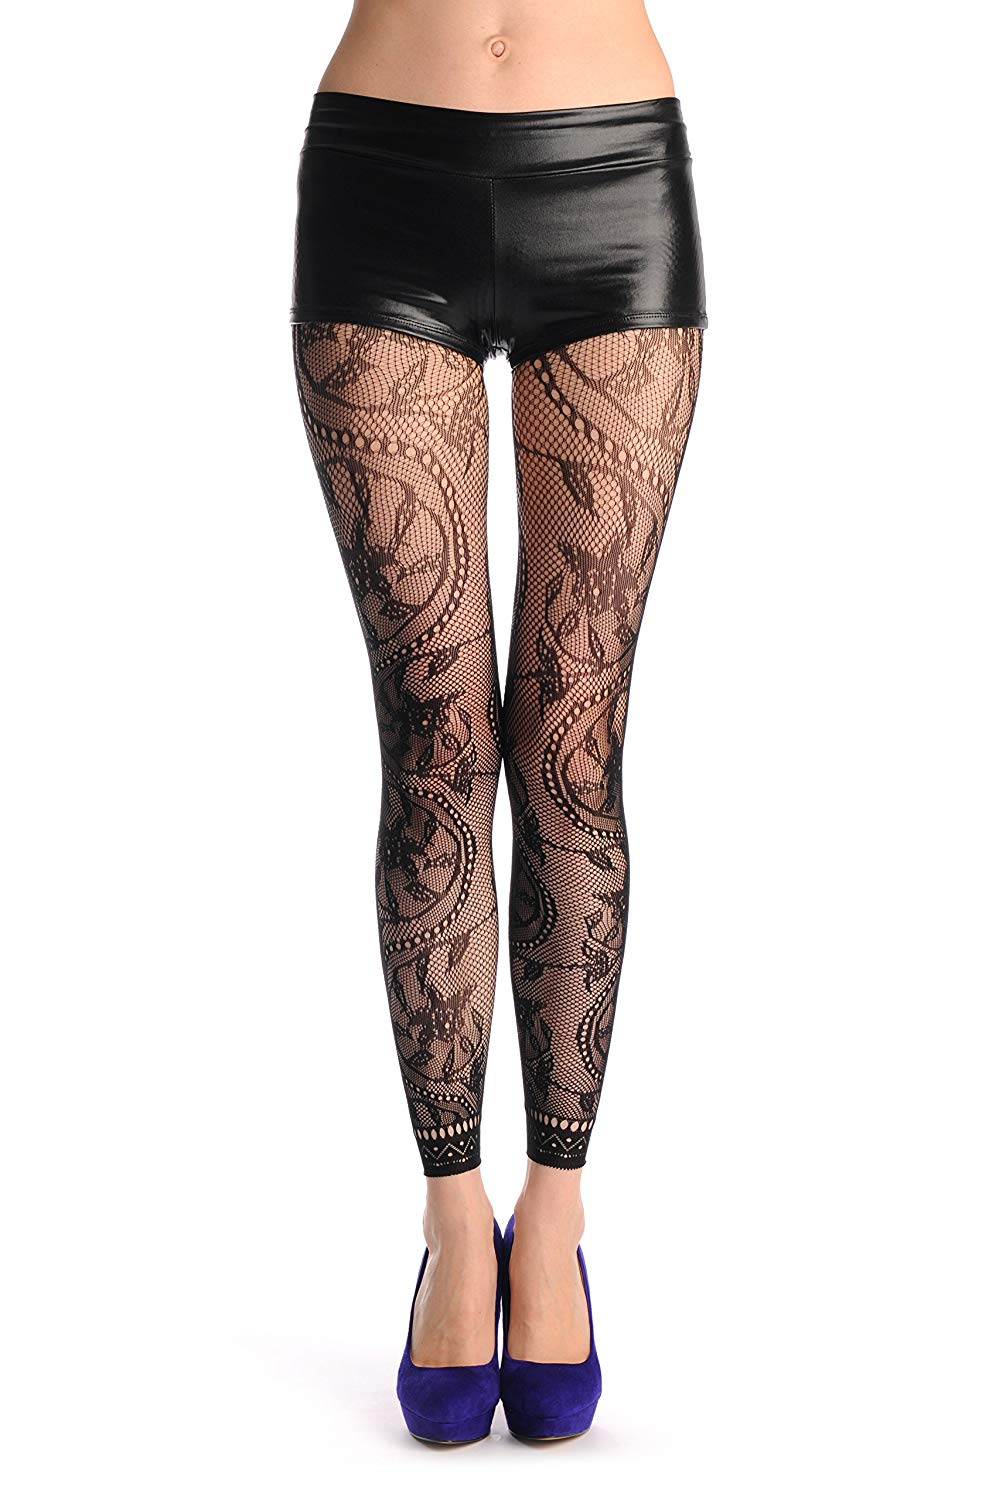 ab50df365a1 Get Quotations · Rounded Pearl Flowers With Lace Trim Footless Fishnet - Tights  Footless